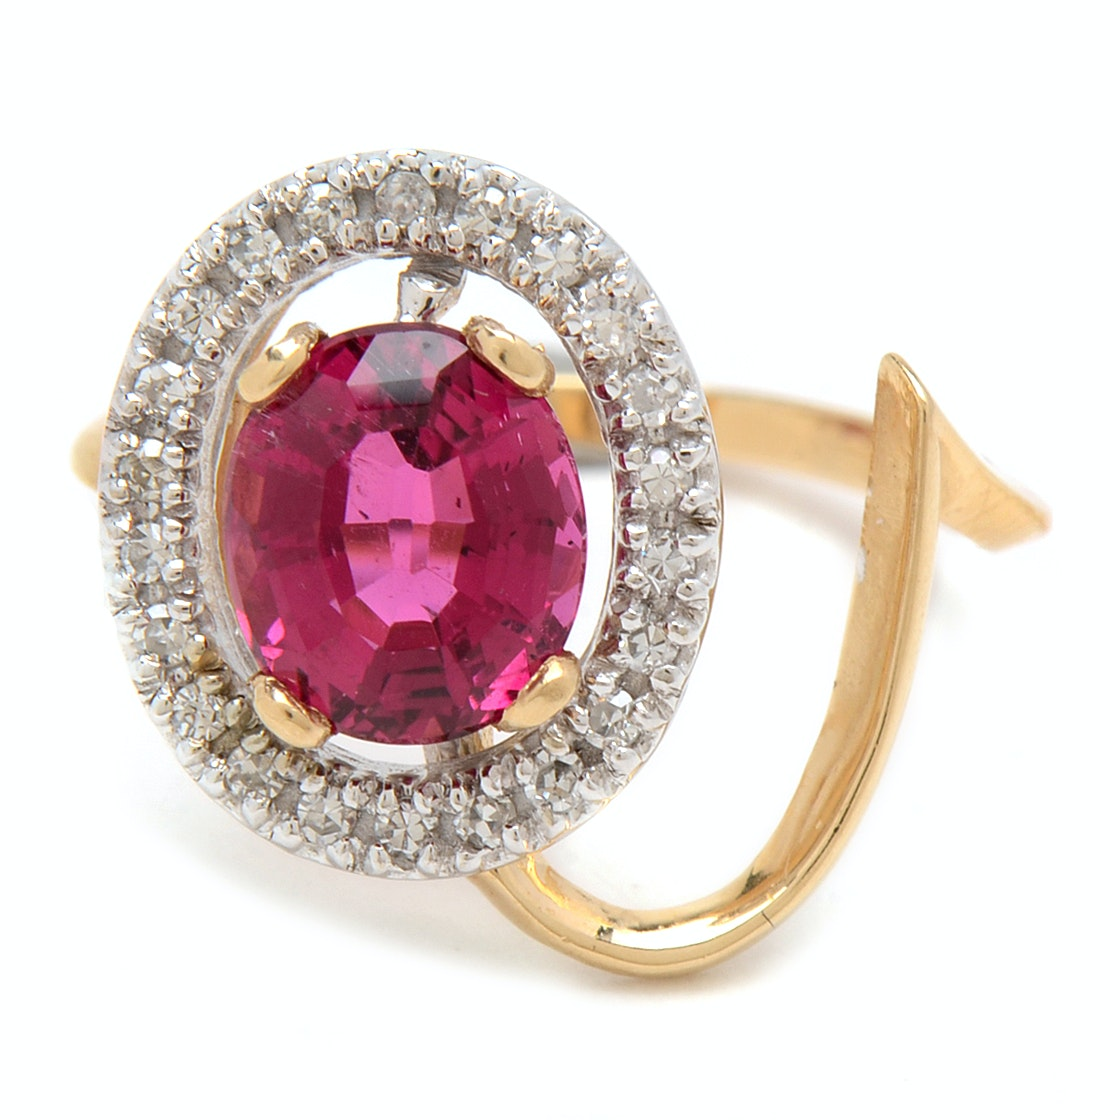 14K Yellow Gold 1.92 Carat Pink Tourmaline and Diamond Ring